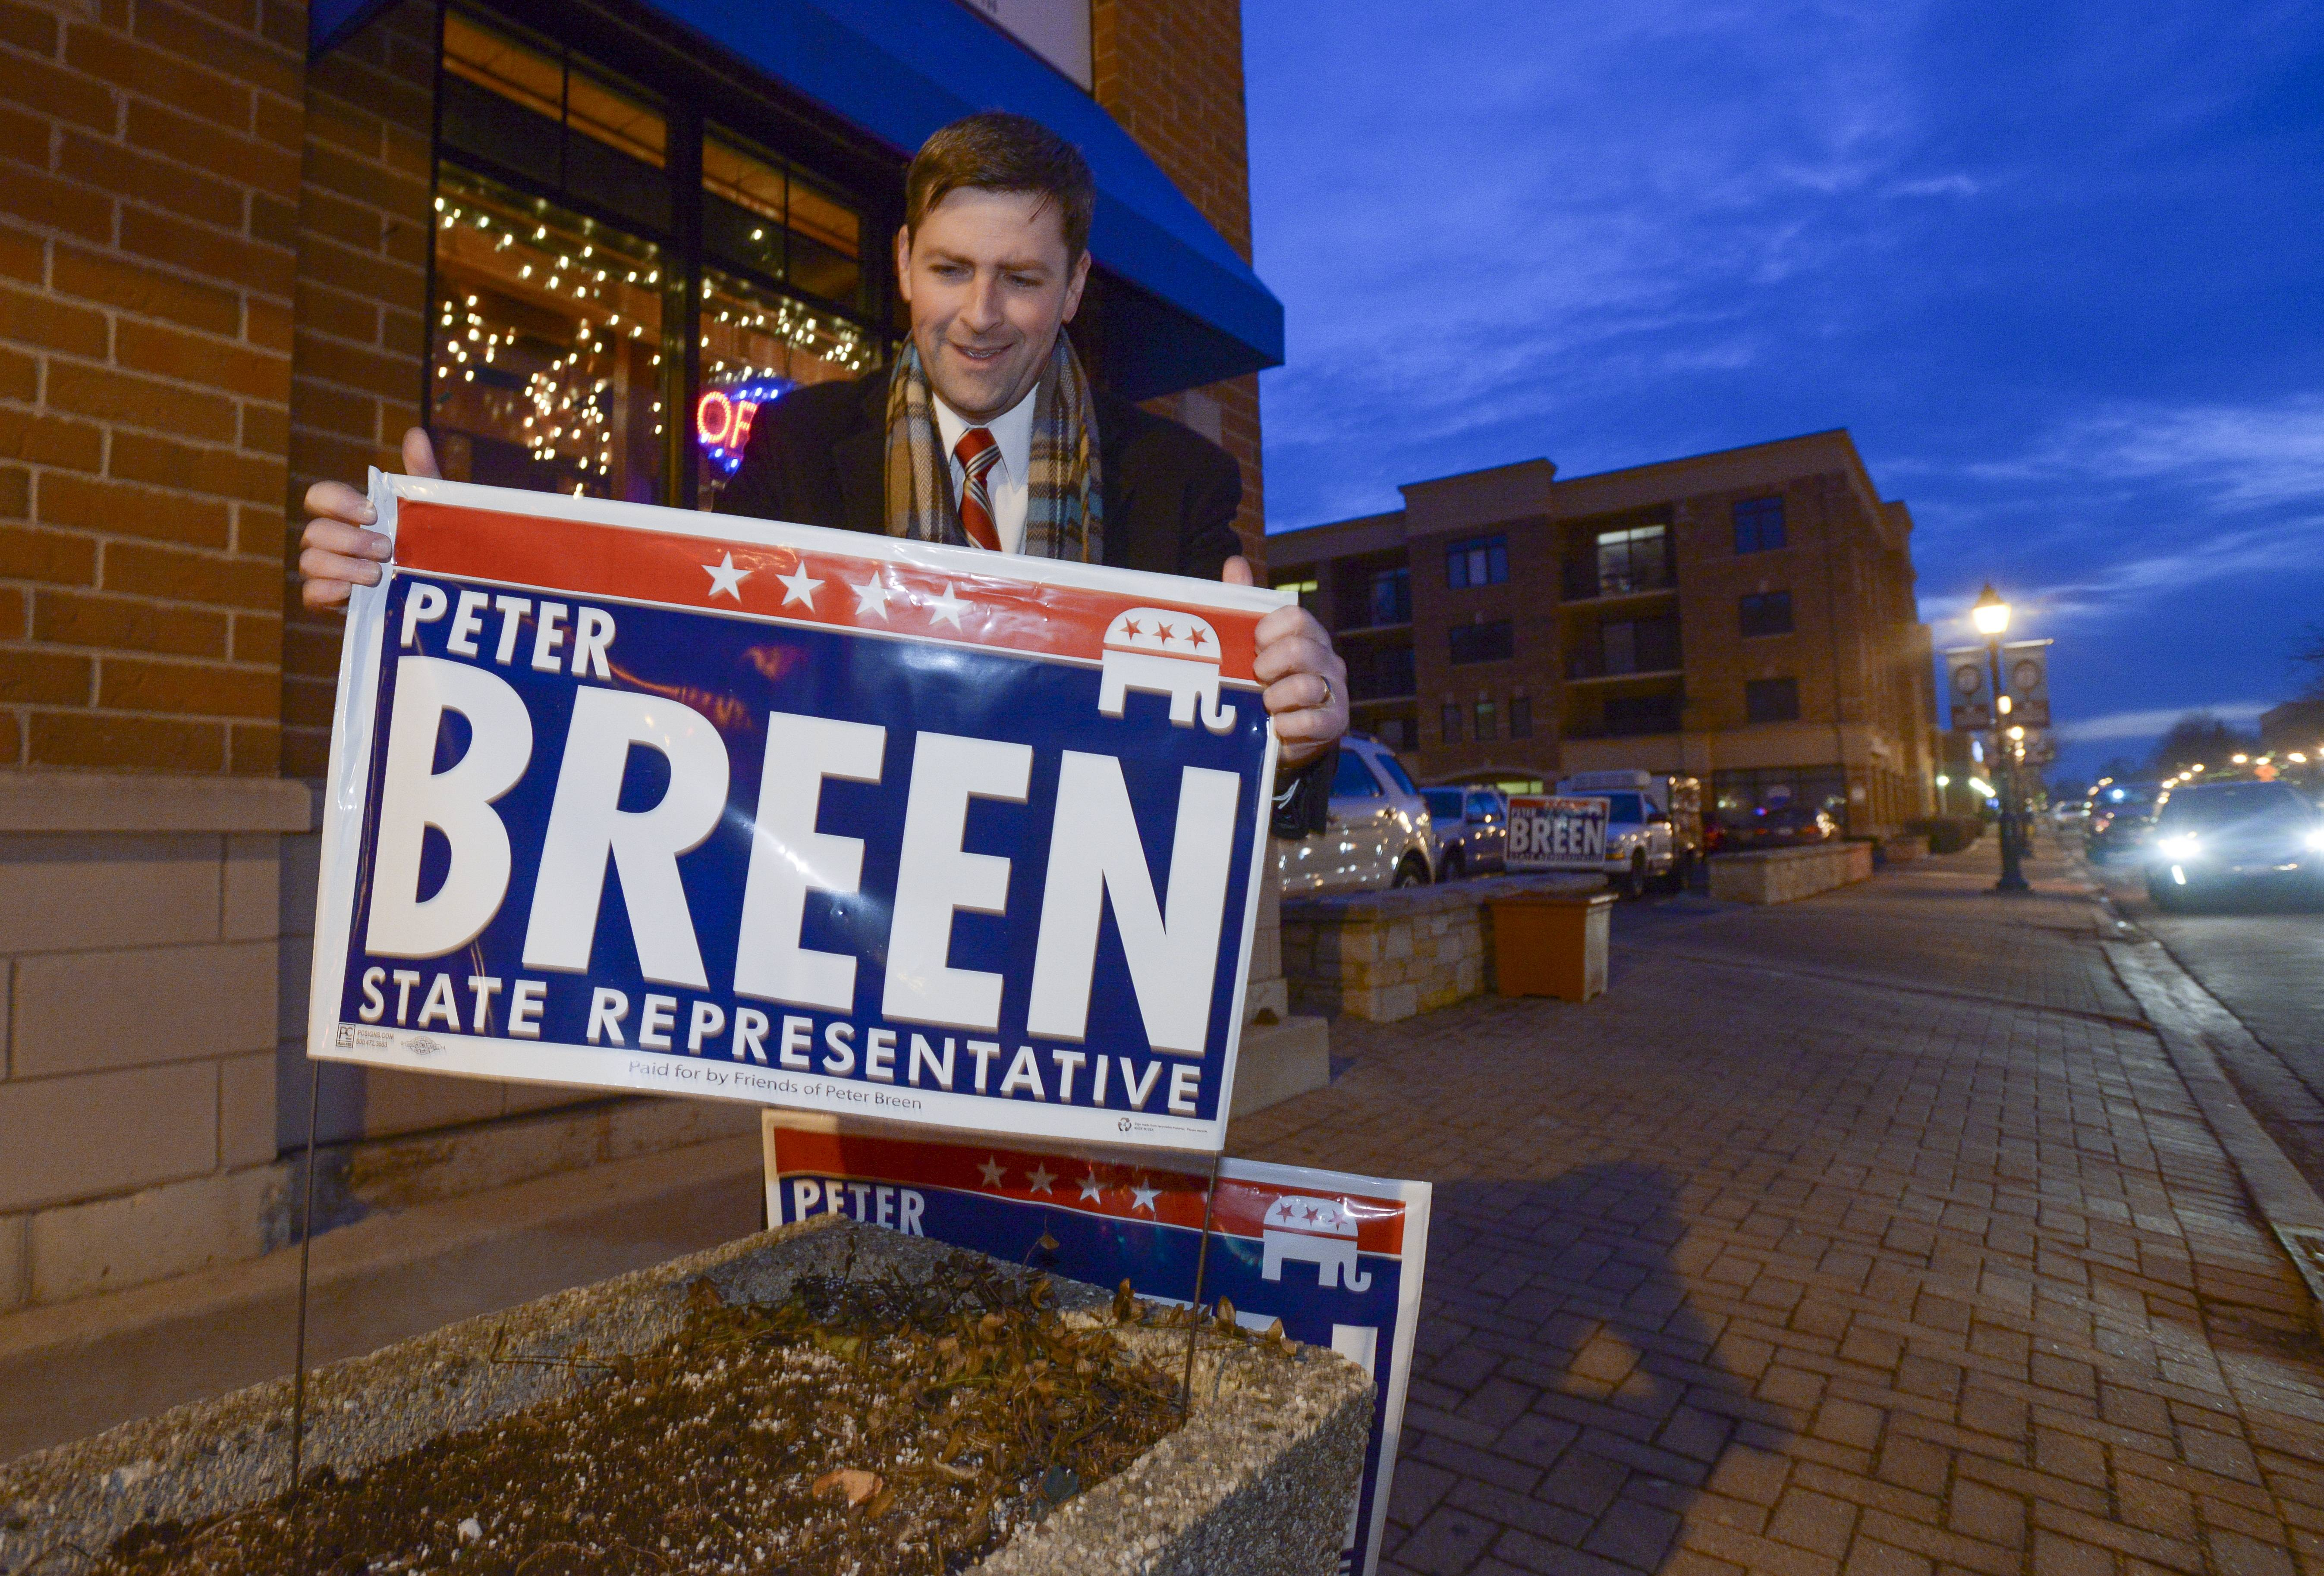 Peter Breen posts campaign signs outside Capone's restaurant in Lombard Tuesday, where his Election Night party was located. Breen took the Republican nomination in the 48th House district, ousting longtime Rep. Sandra Pihos from her seat, according to unofficial election results.